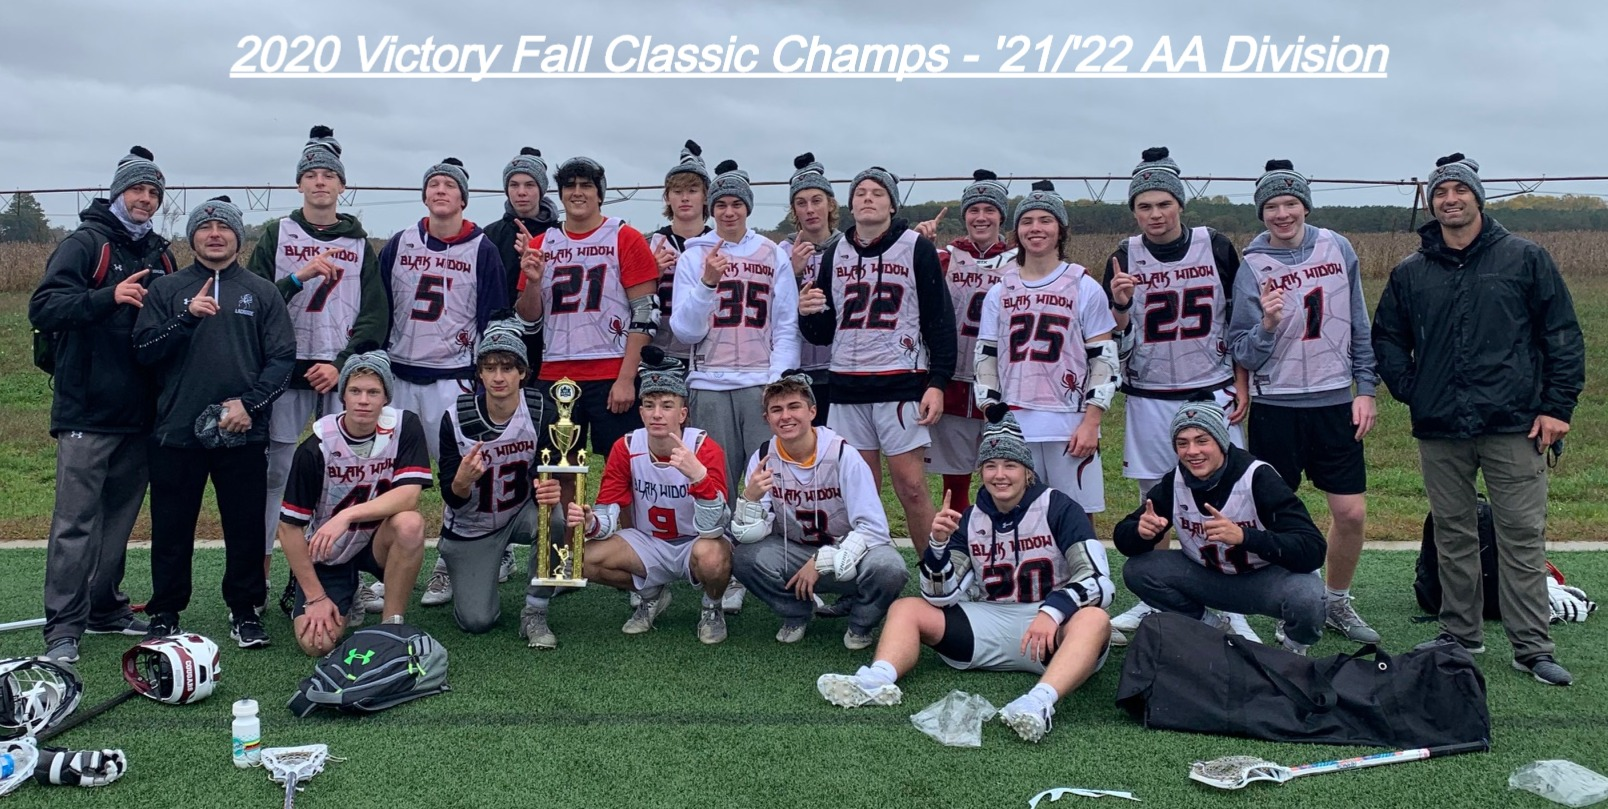 Victory Fall Classic Champs